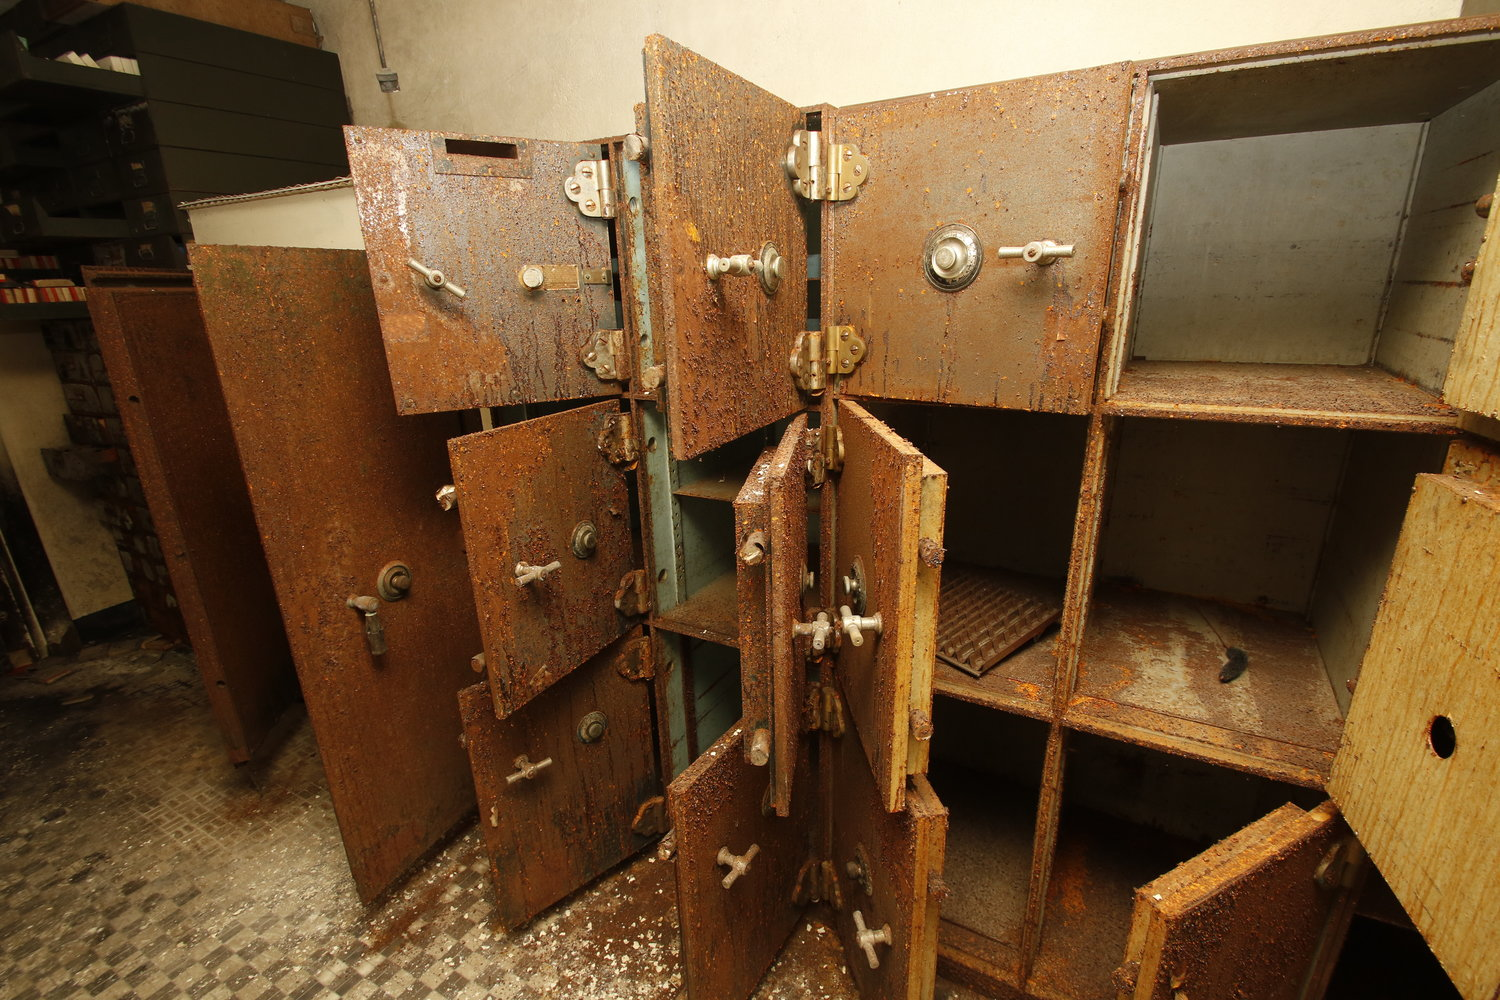 Personal Safety deposit boxes and vaults were rusted.